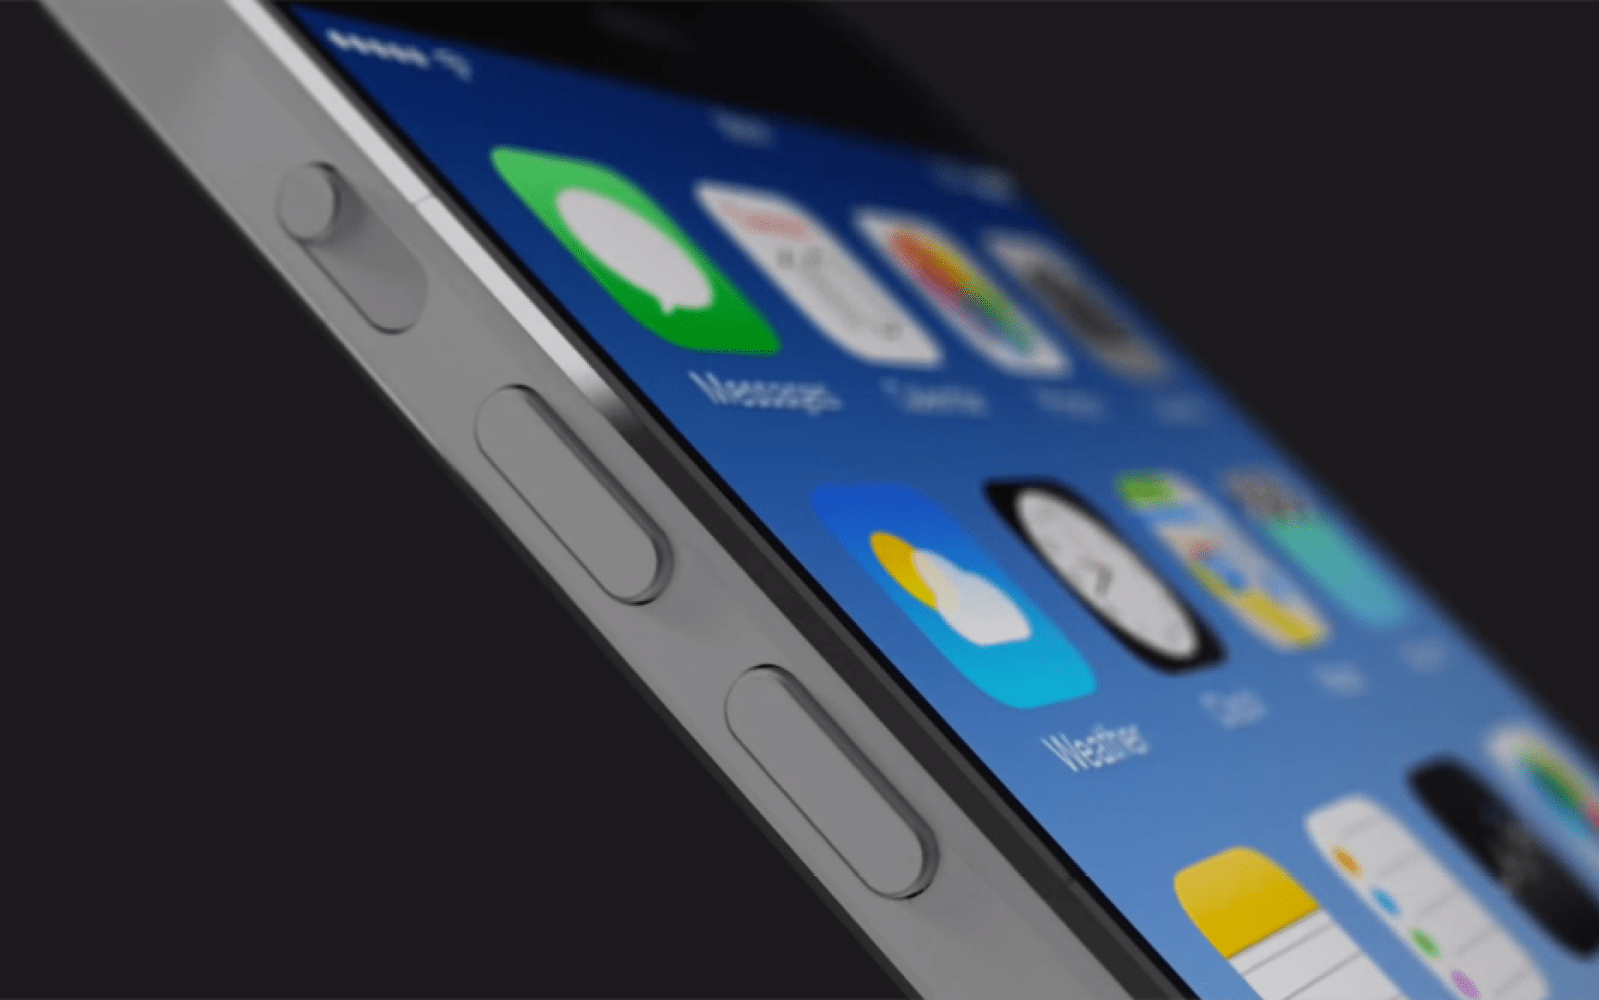 Rumor: Apple will launch 4.7-inch iPhone 6 in Sep, but 5.5-inch model later in the year